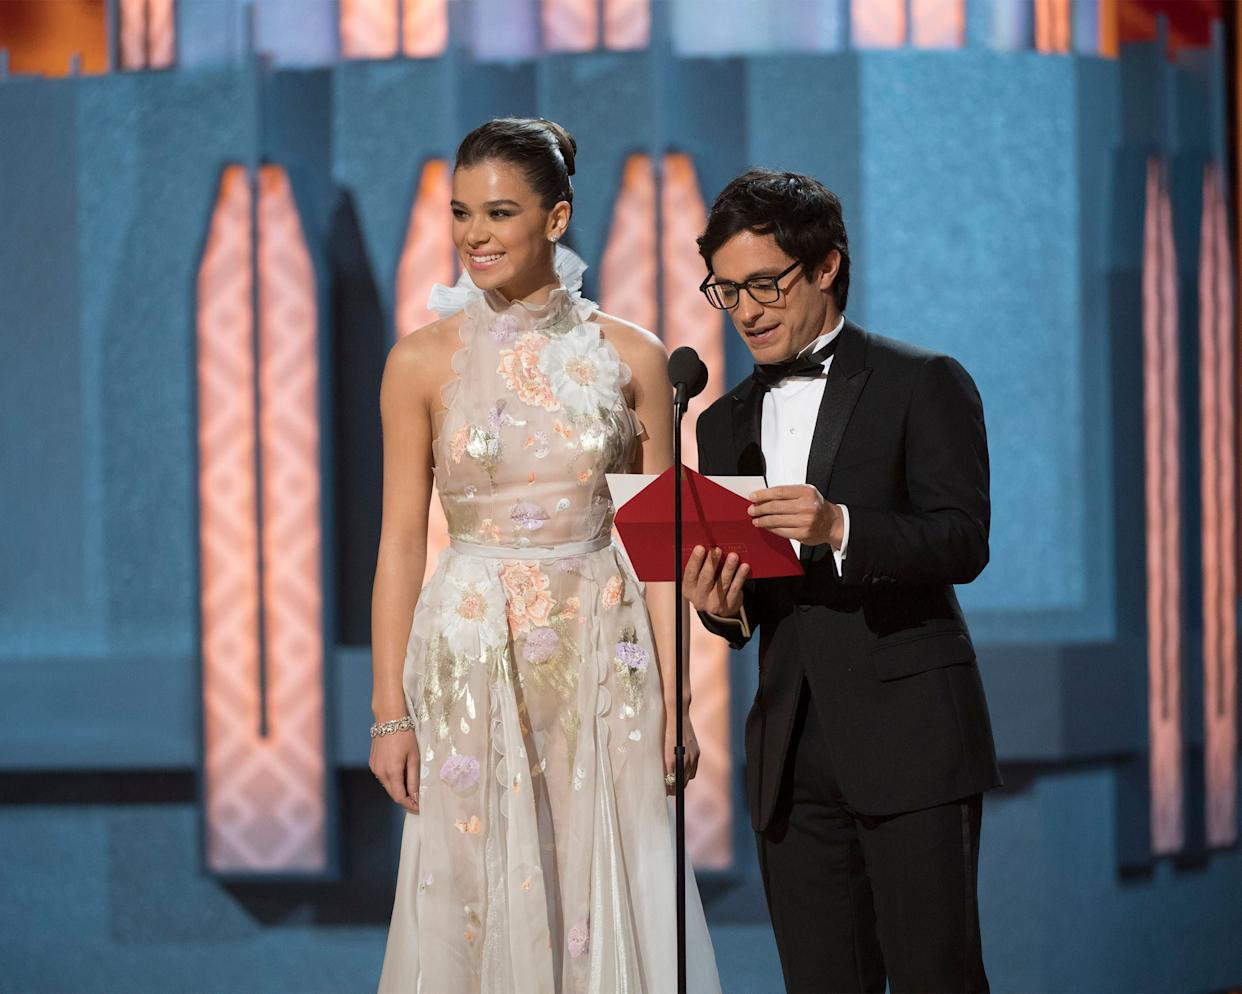 """Gael Garc&iacute;a Bernal took the Oscar stage to present the Academy Award&nbsp;for Best Animated Feature Film, but before revealing the winner, the Mexican actor <a href=""""http://www.huffingtonpost.com/entry/gael-garc%C3%ADa-bernal-denounces-trumps-border-wall-in-powerful-oscars-moment_us_58b3994fe4b0a8a9b7836dcf"""" rel=""""nofollow noopener"""" target=""""_blank"""" data-ylk=""""slk:took a moment to publicly denounce Trump's proposed border&nbsp;wall."""" class=""""link rapid-noclick-resp"""">took a moment to publicly denounce Trump's proposed border&nbsp;wall.</a><br><br>&ldquo;Flesh and blood actors are migrant workers; we travel all over the world, we build families, we construct stories, we build life that cannot be divided,&rdquo; <a href=""""http://www.huffingtonpost.com/entry/gael-garc%C3%ADa-bernal-denounces-trumps-border-wall-in-powerful-oscars-moment_us_58b3994fe4b0a8a9b7836dcf"""" rel=""""nofollow noopener"""" target=""""_blank"""" data-ylk=""""slk:Garc&iacute;a Bernal said."""" class=""""link rapid-noclick-resp"""">Garc&iacute;a Bernal said.</a> &ldquo;As a Mexican, as a Latin American, as a migrant worker, as a human being, I&rsquo;m against any form of wall that wants to separate us."""""""